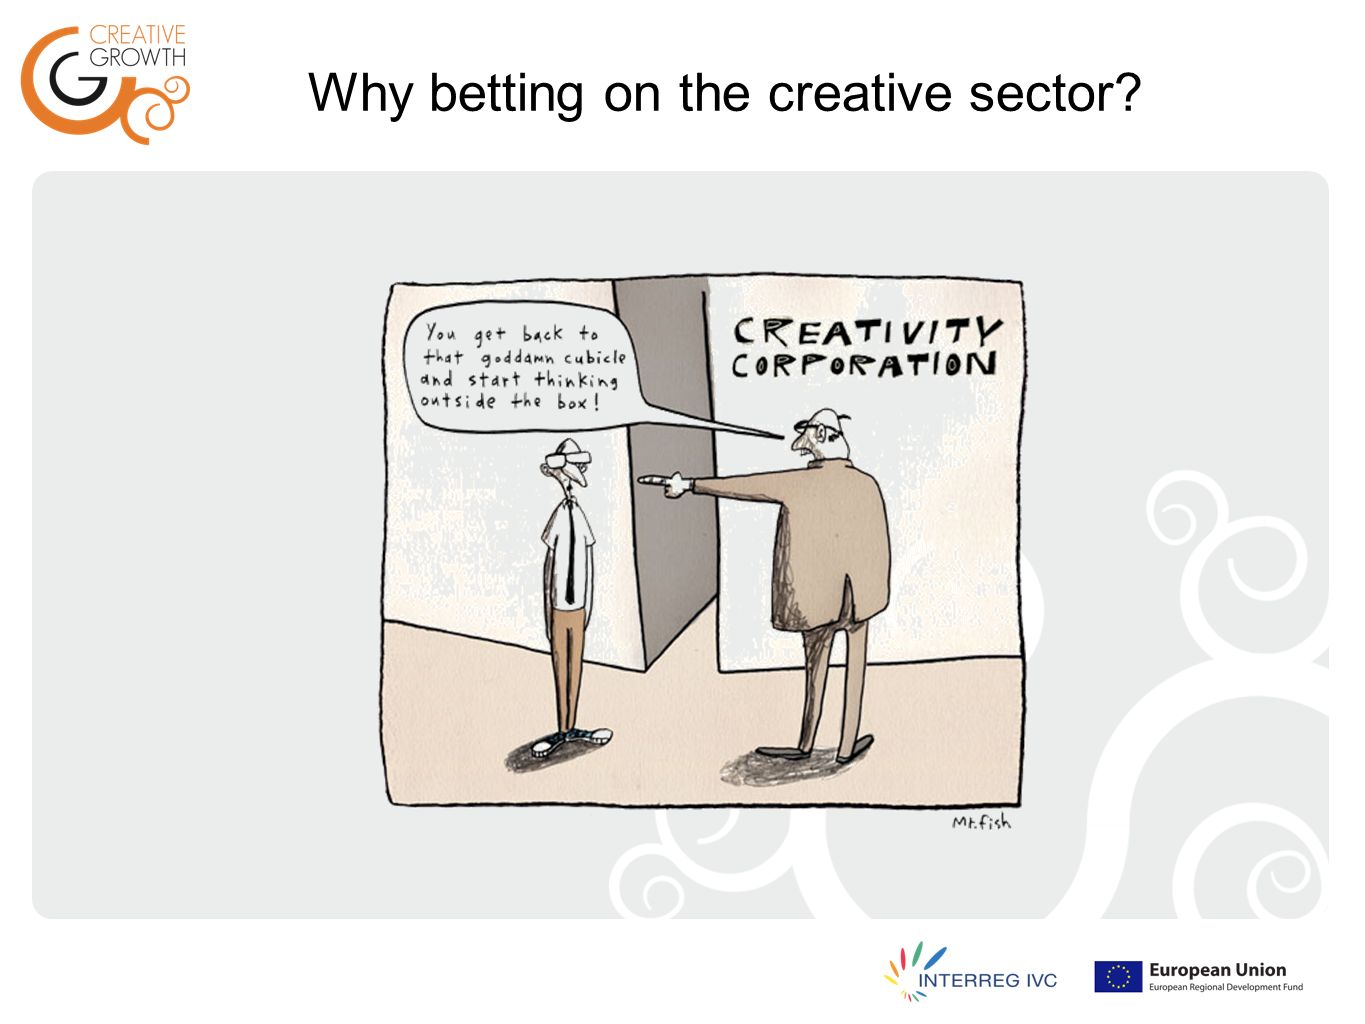 Why betting on the creative sector?